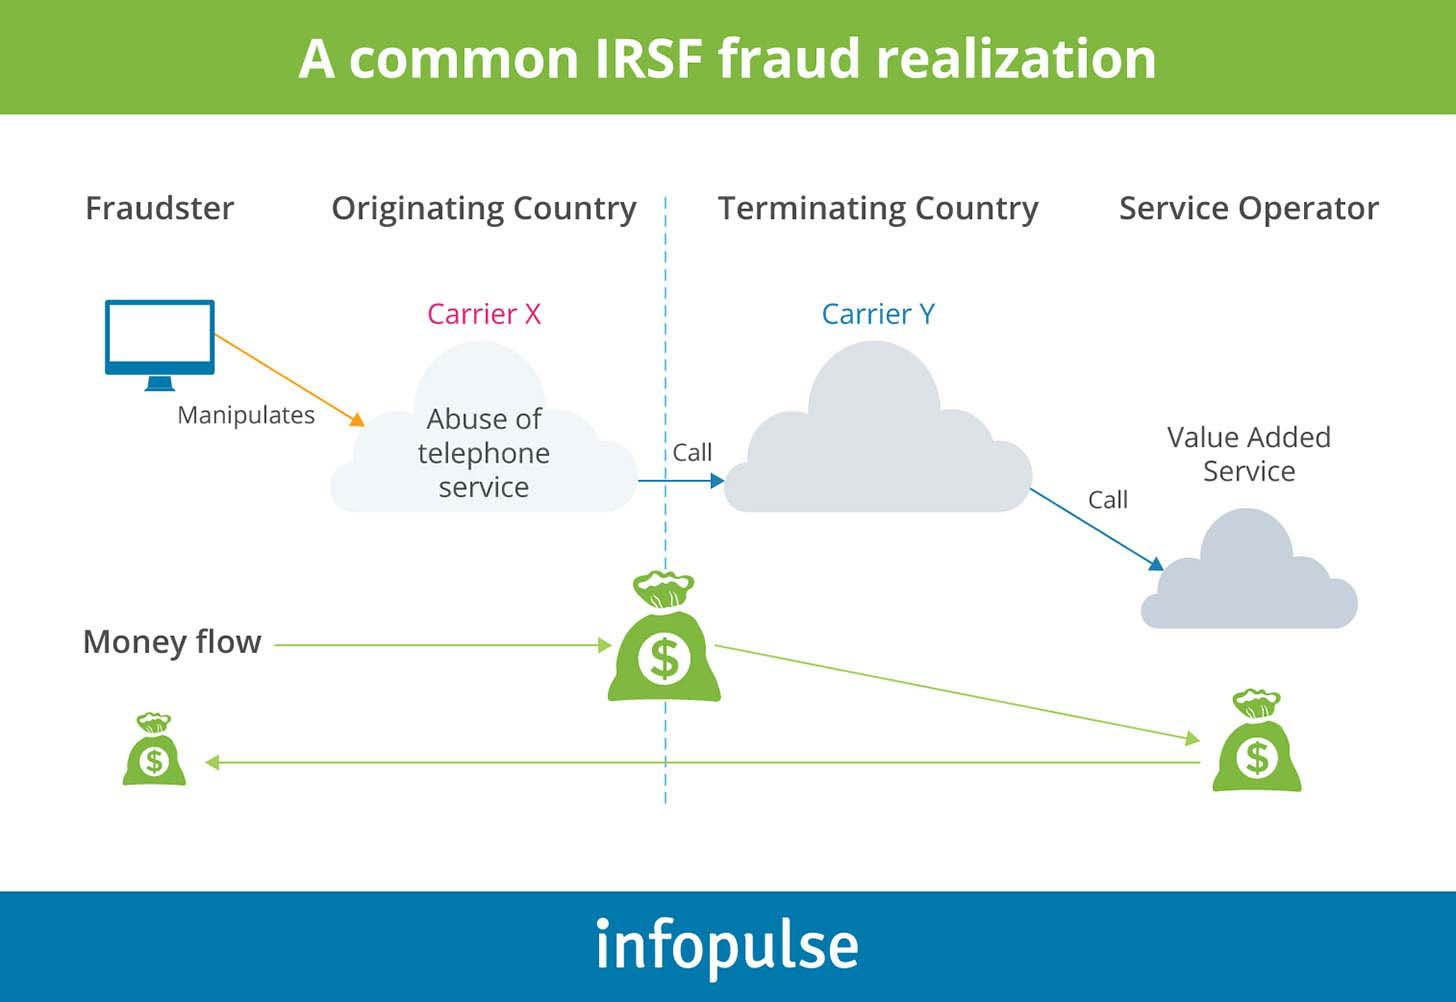 A Common IRSF Fraud Realization - Infopulse - 2